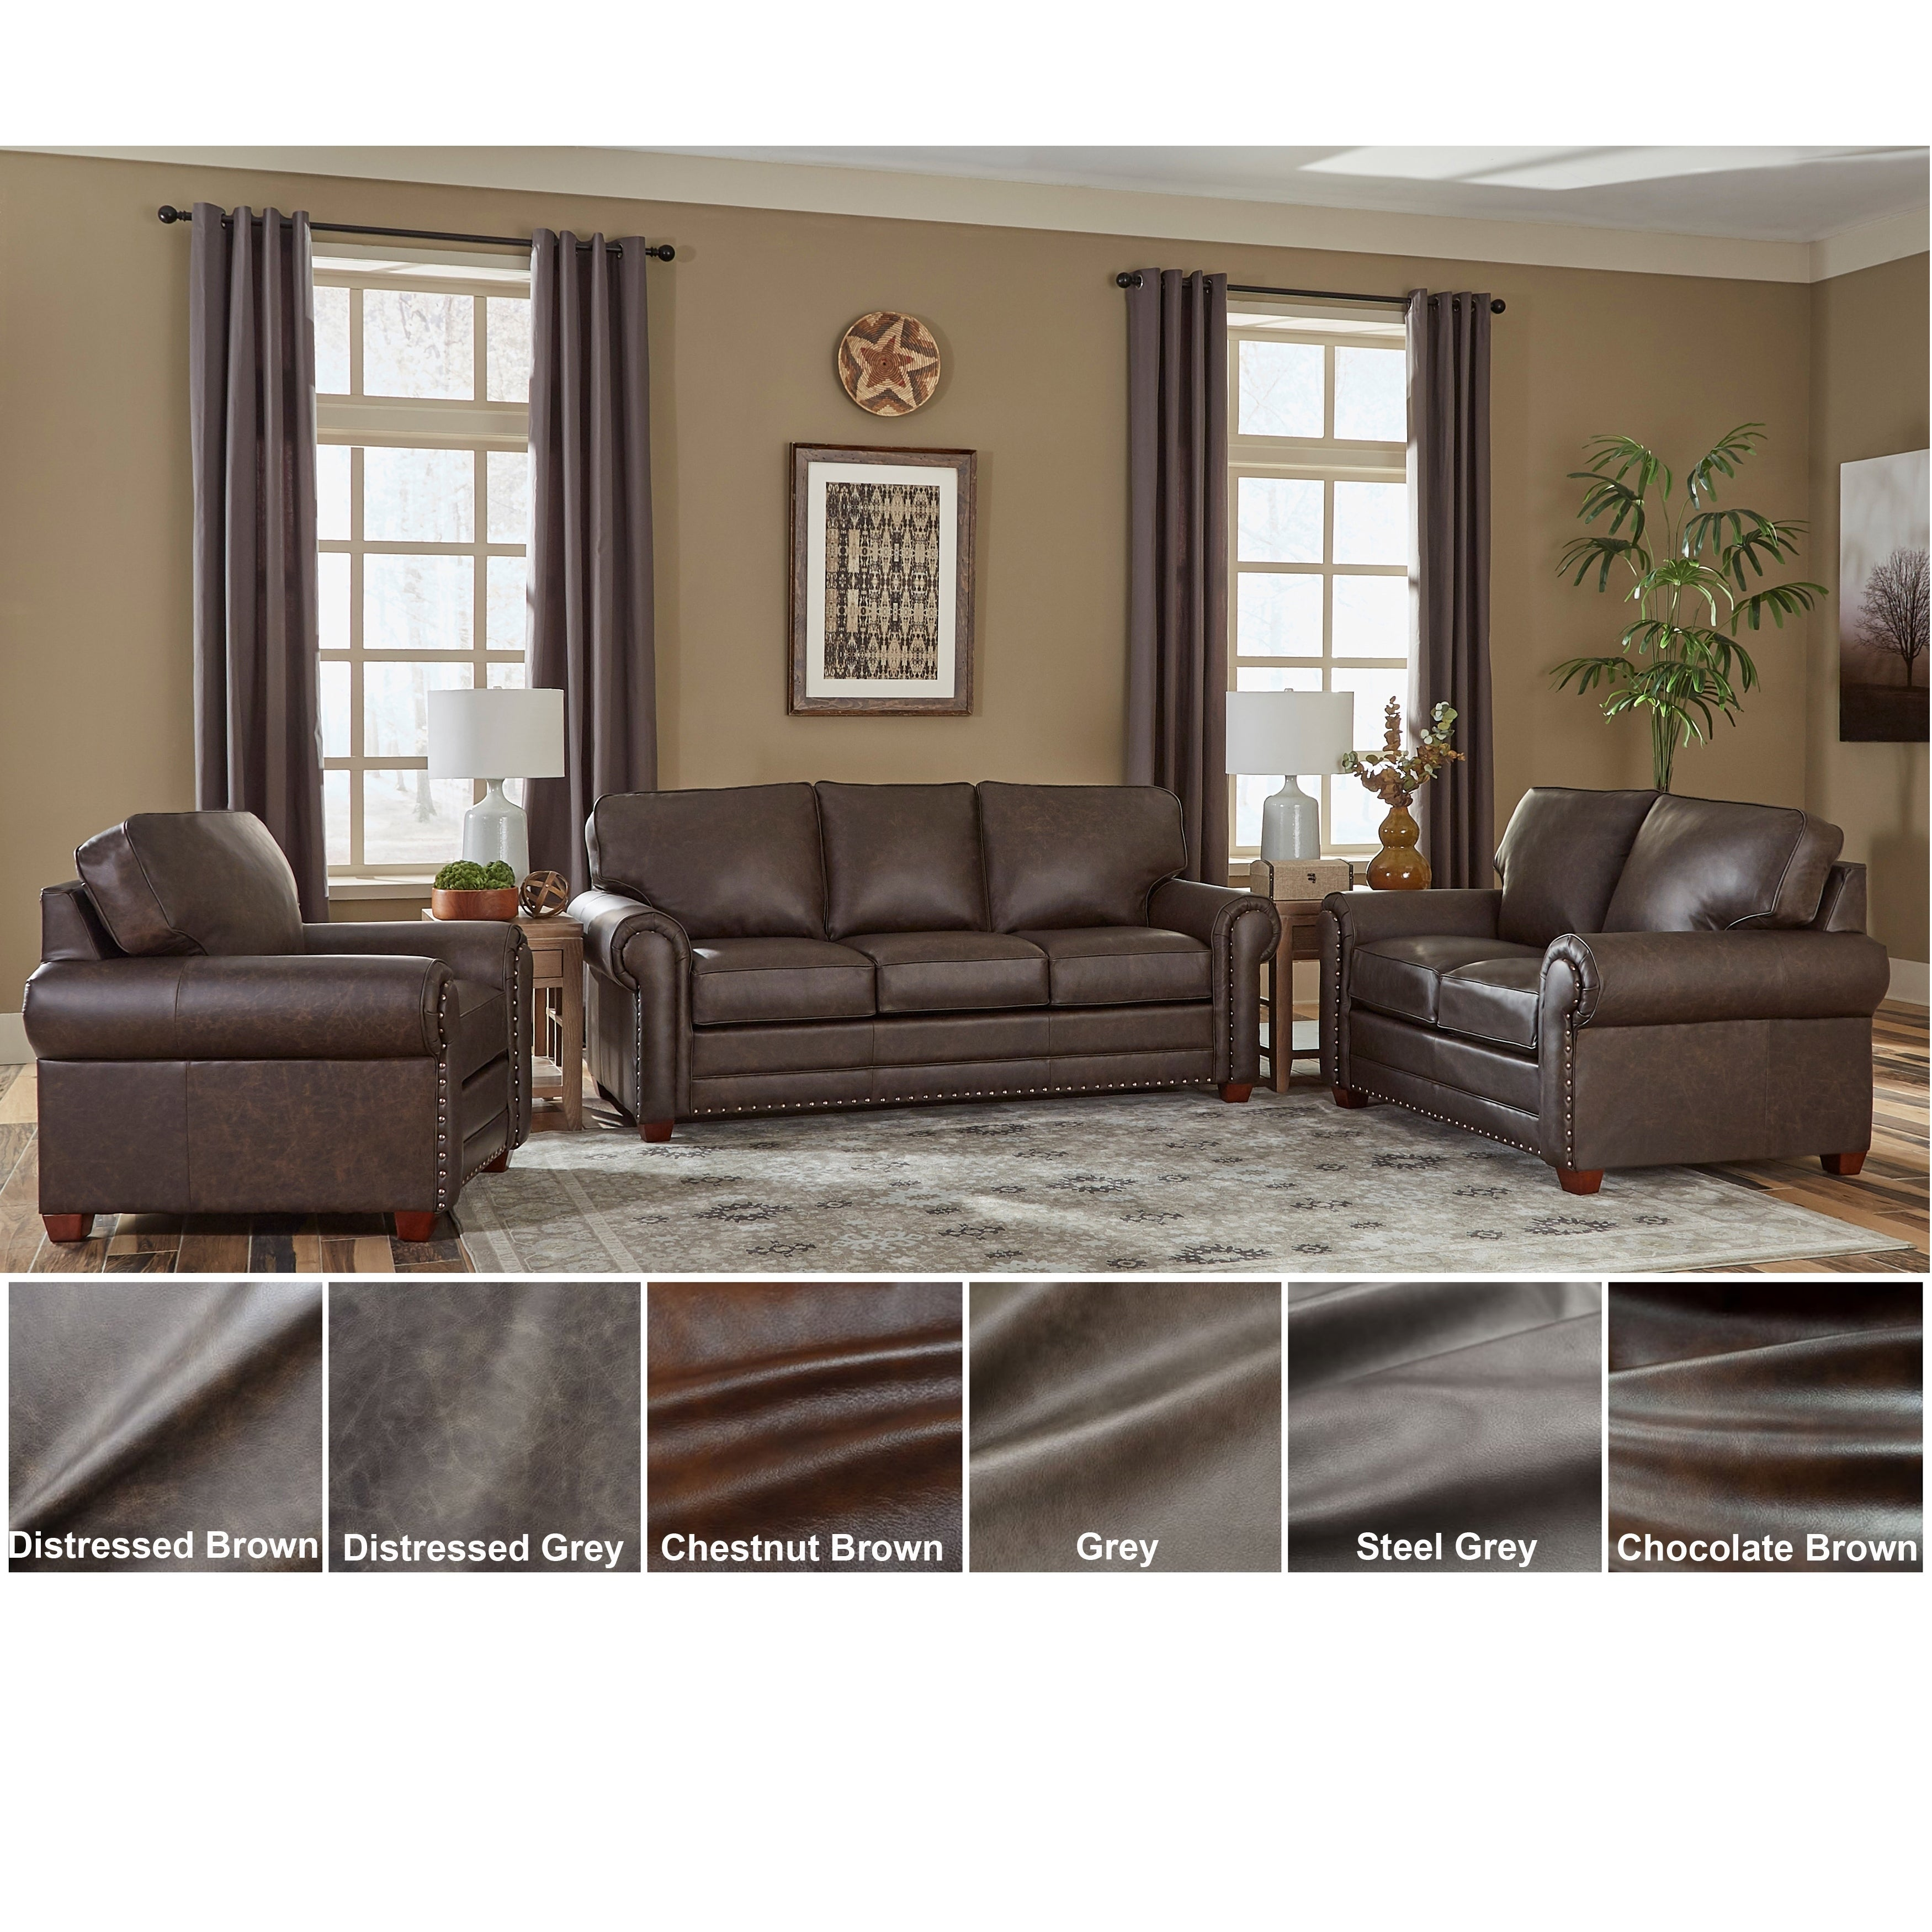 Made in USA Raval Top Grain Leather Sofa Bed, Loveseat and Chair